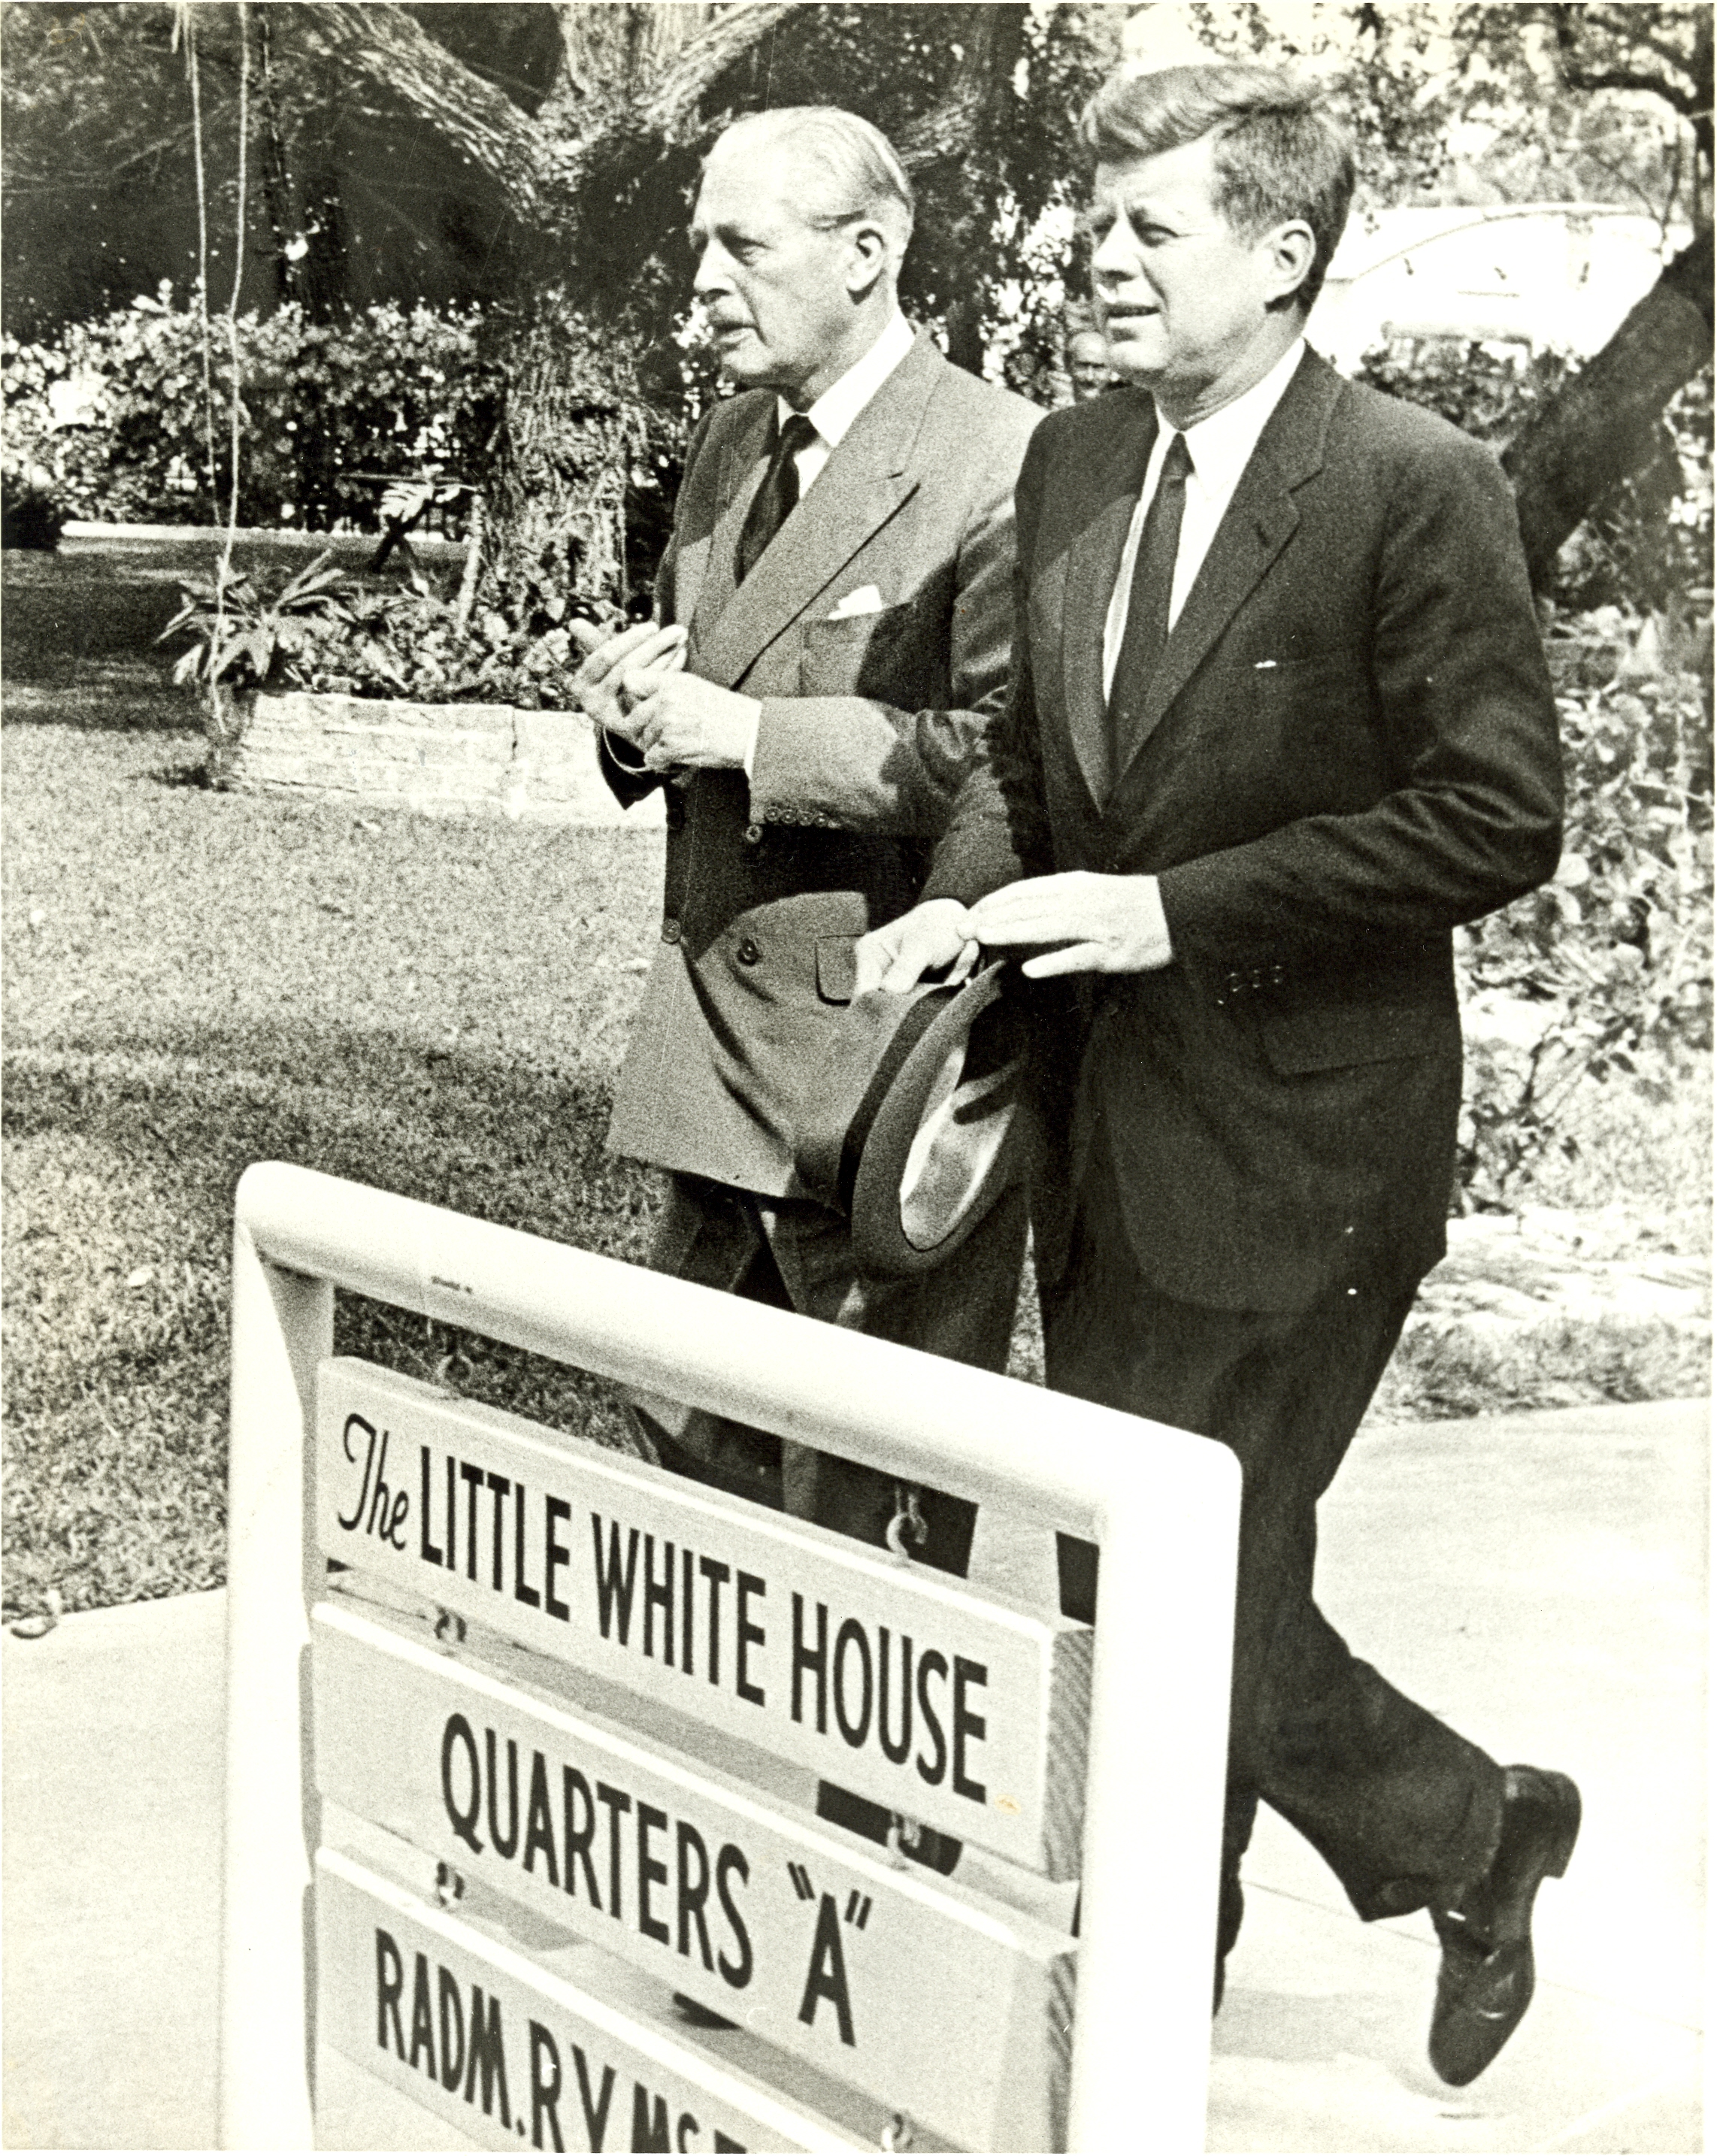 President J F Kennedy and British Prime Minister Harold Macmillan at the Truman Little White House in Key West, Florida : March 1961